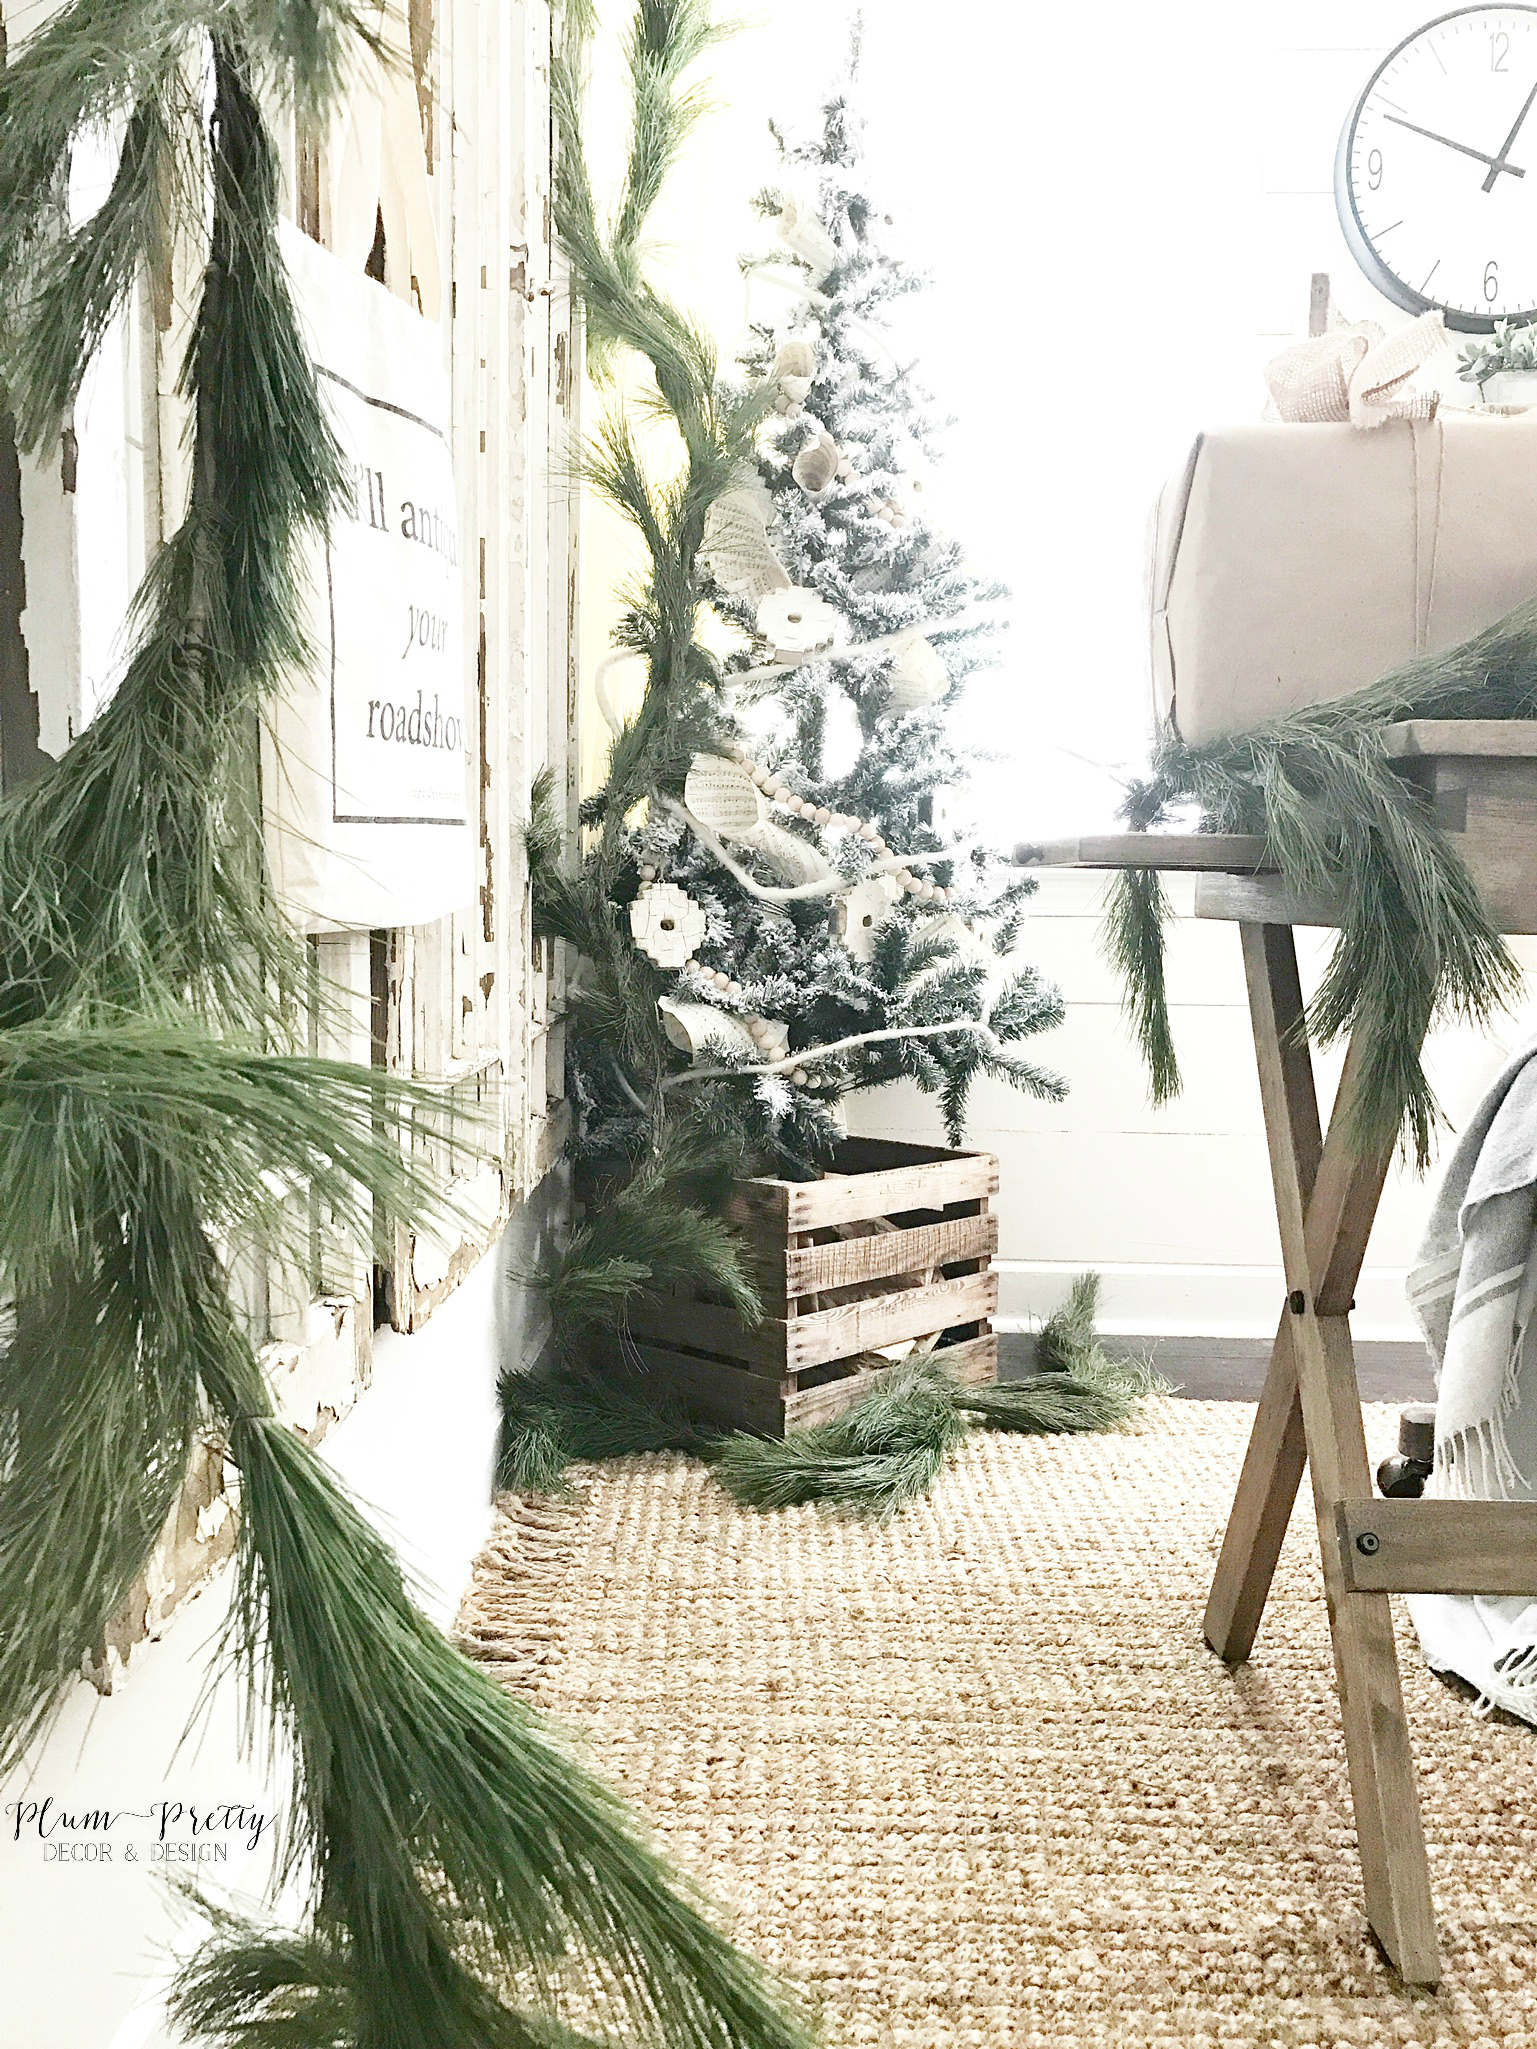 Farmhouse Office with Fresh Garland and Christmas Tree- Plum Pretty Decor and Design